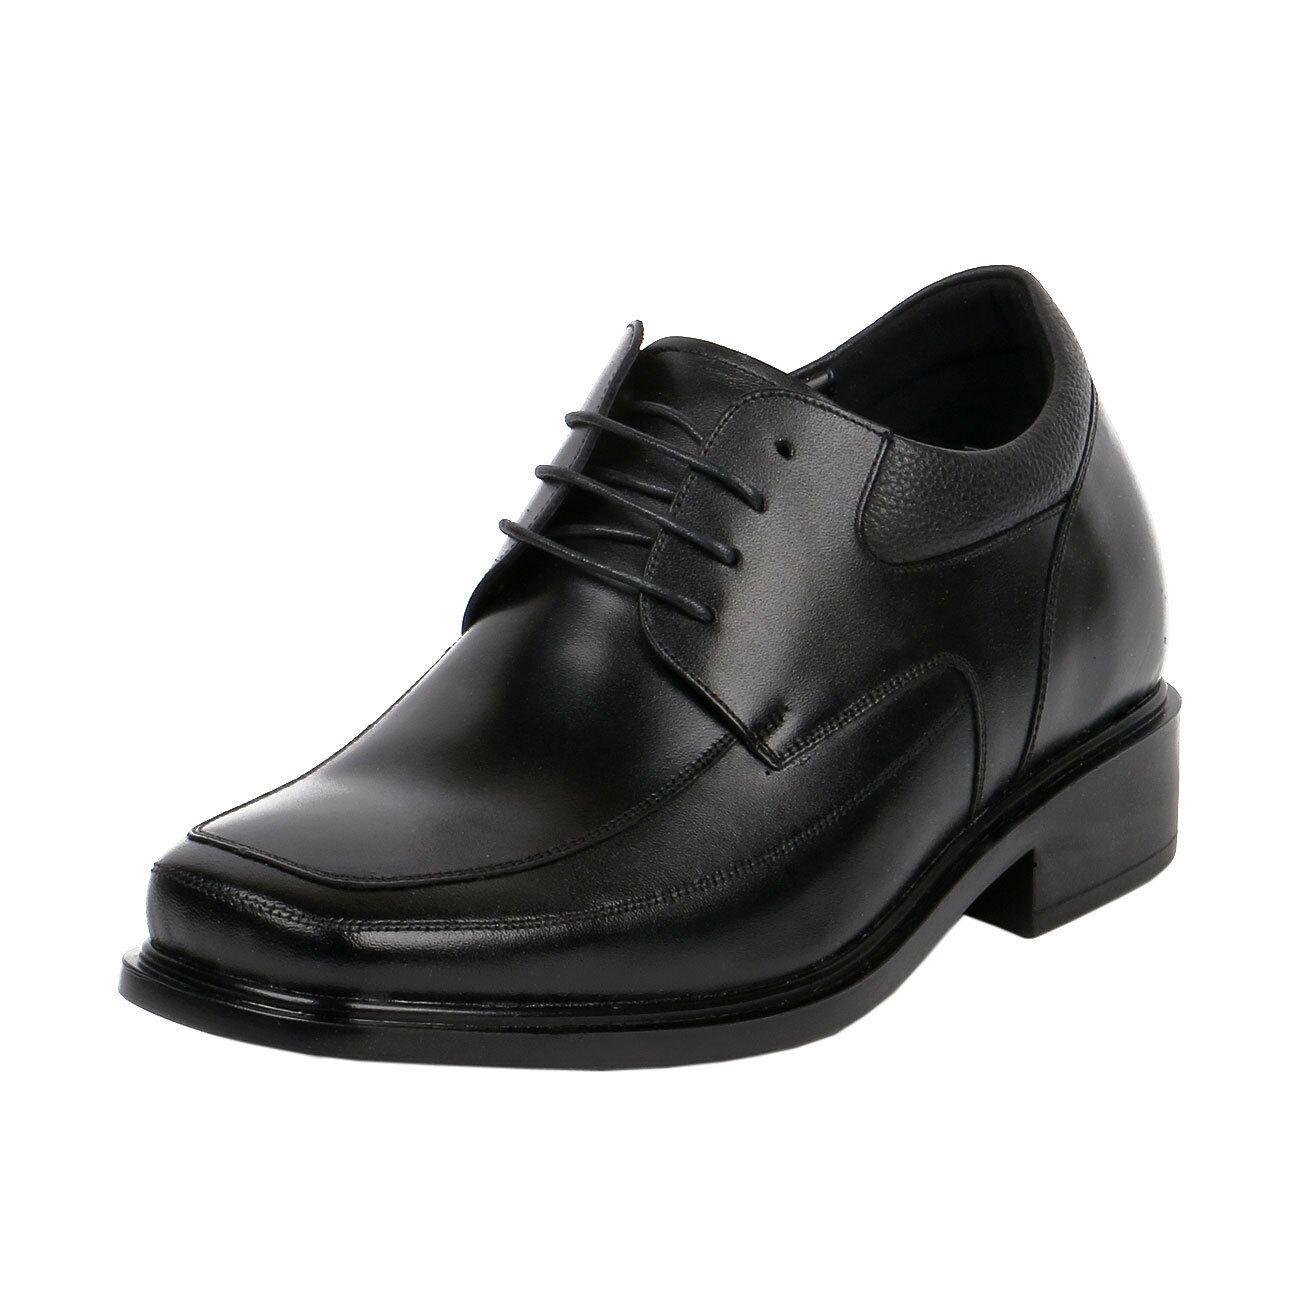 Tall uomo Shoes with High Heel Lifts for Short Height, 3